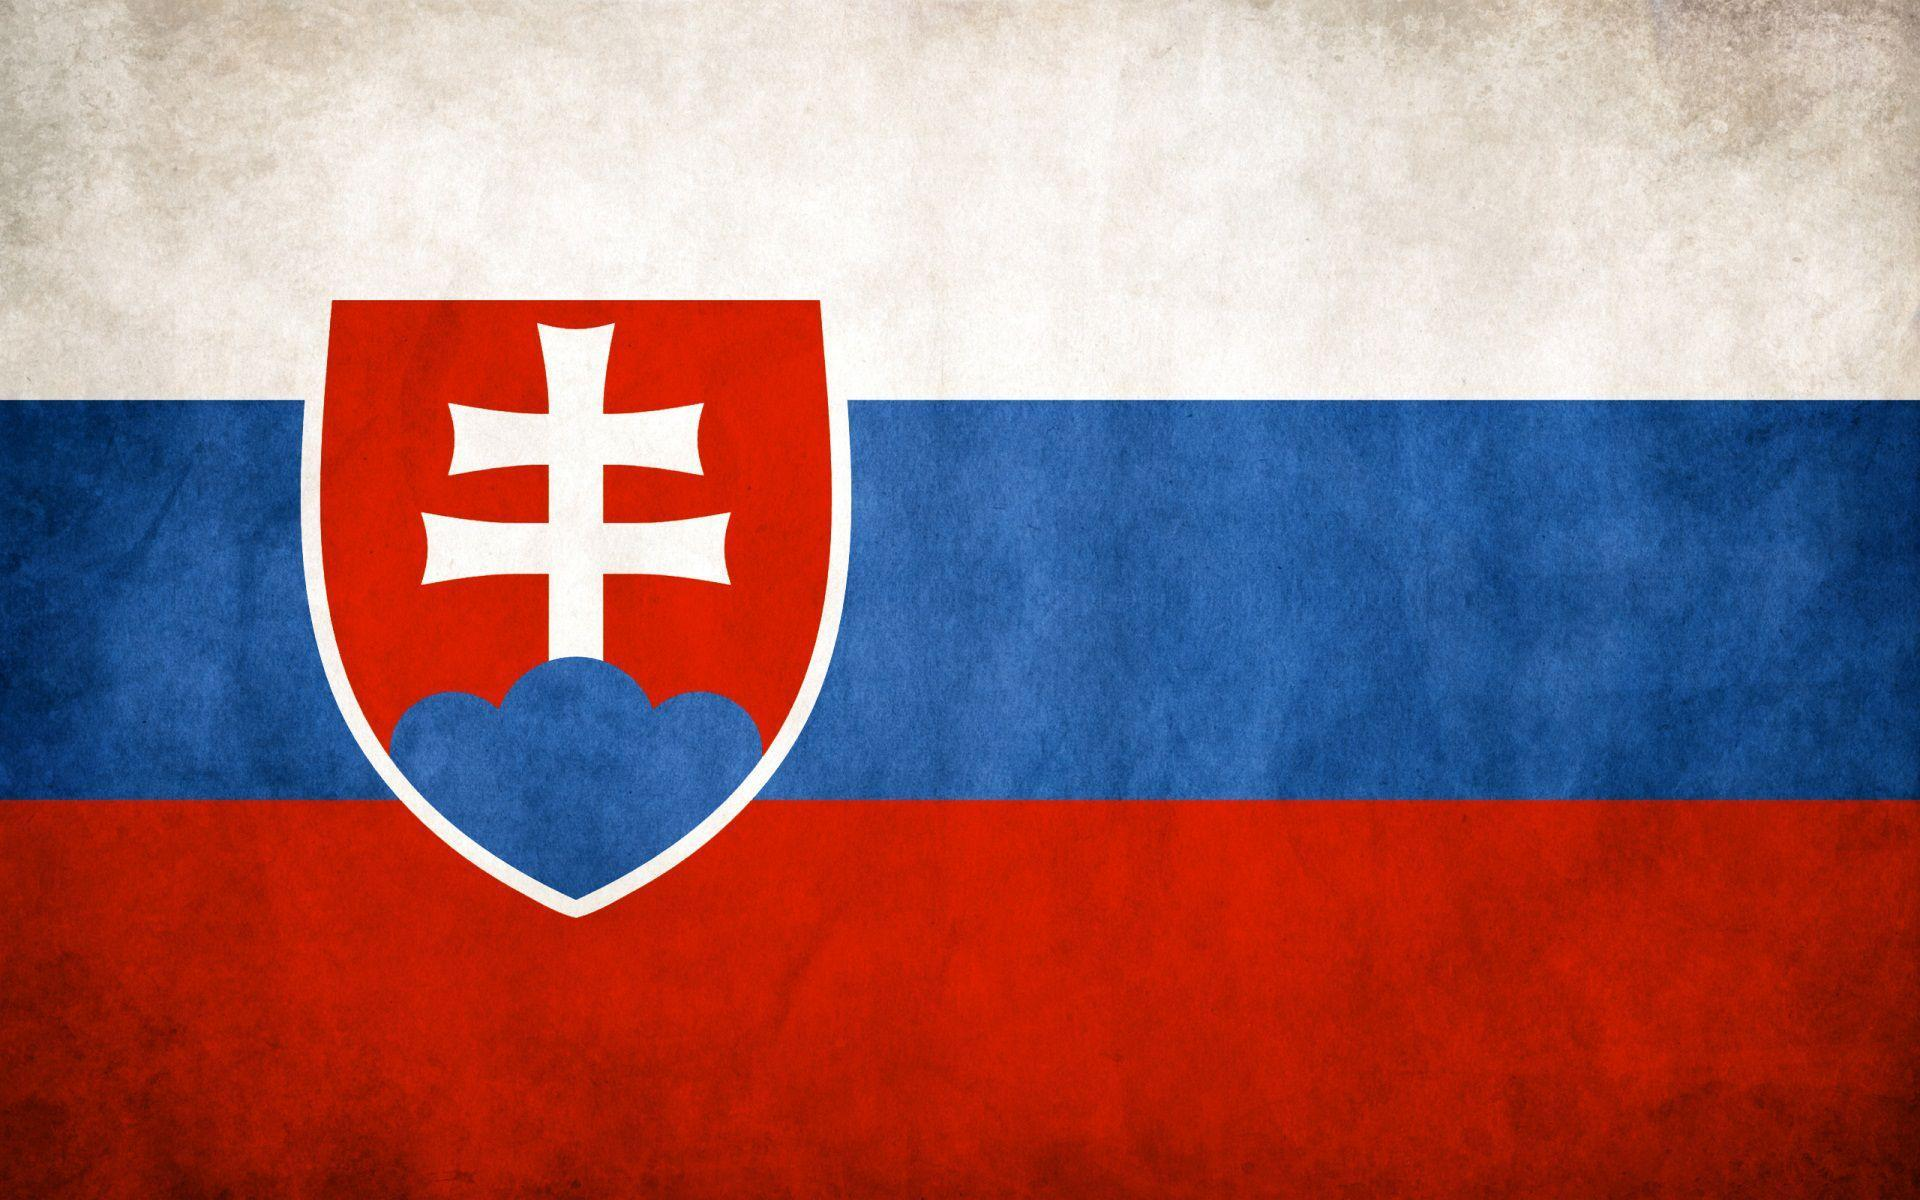 Slovakia Flag Wallpapers for Android   APK Download 1920x1200